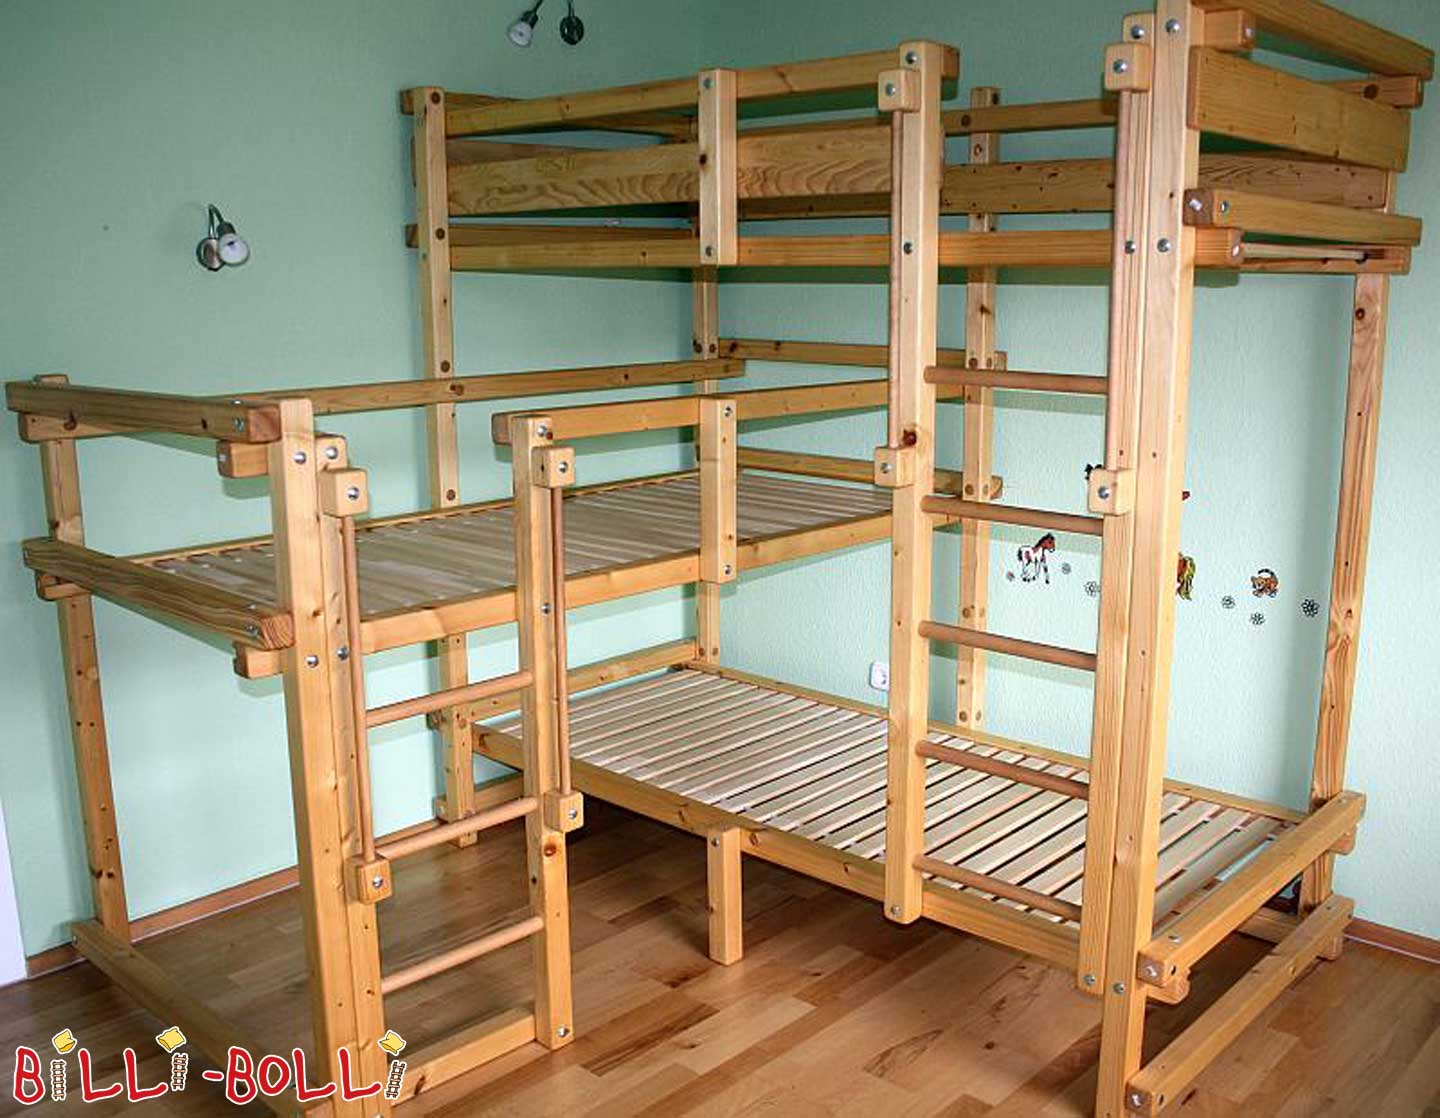 secondhand seite 127 billi bolli kinderm bel. Black Bedroom Furniture Sets. Home Design Ideas